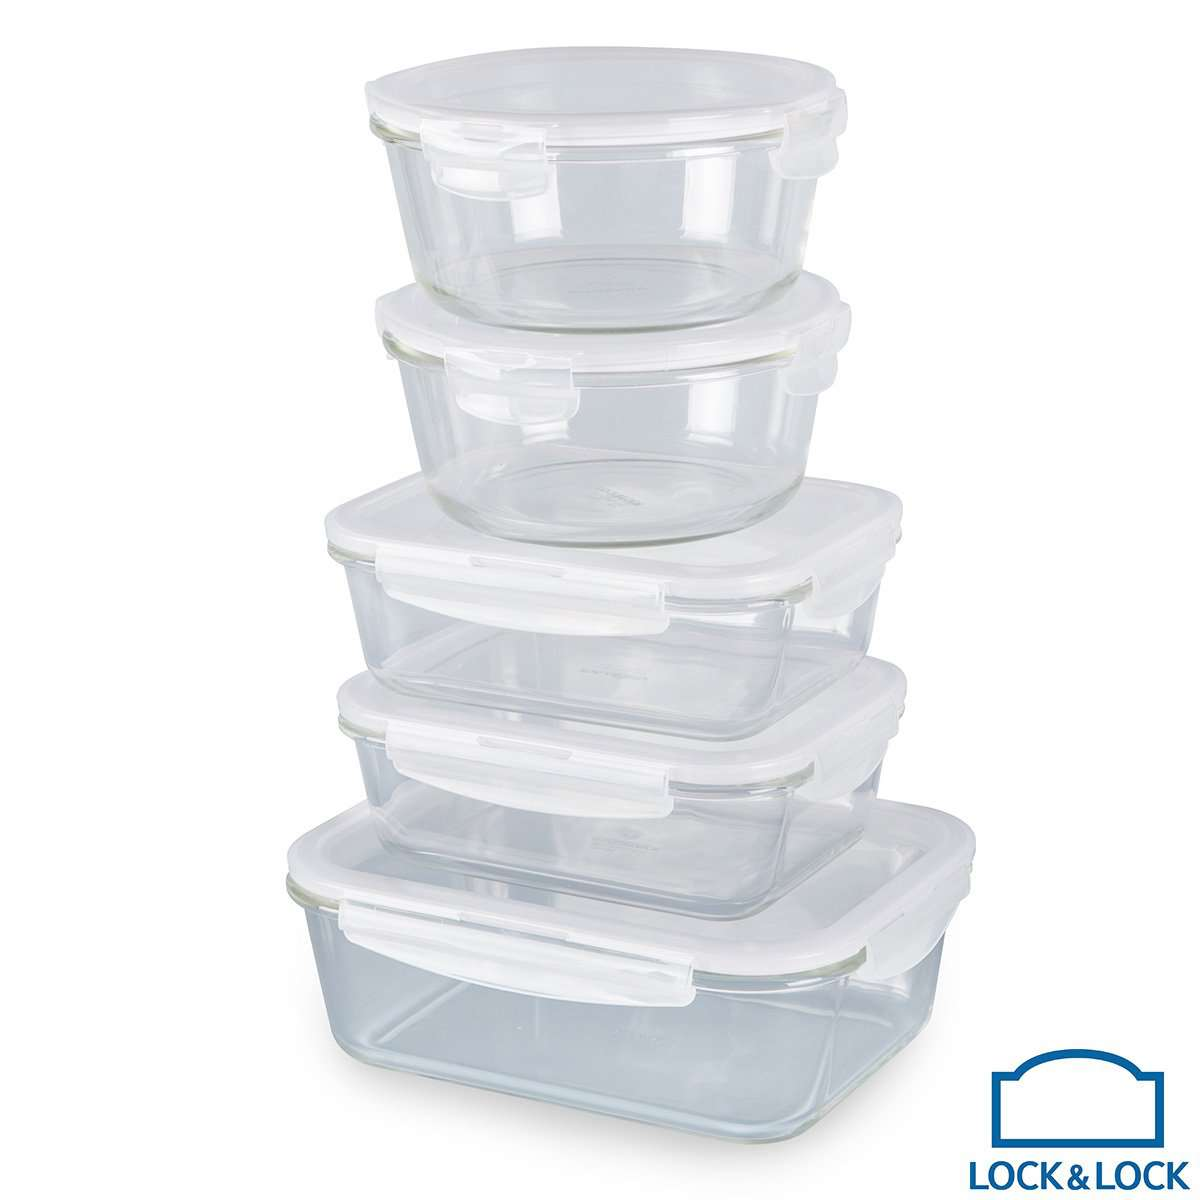 LOCK&LOCK Oven Glass Food Storage Containers, 5 Piece Set with LidsLOCK&LOCK Oven Glass Food Storage Containers, 5 Piece Set with Lids